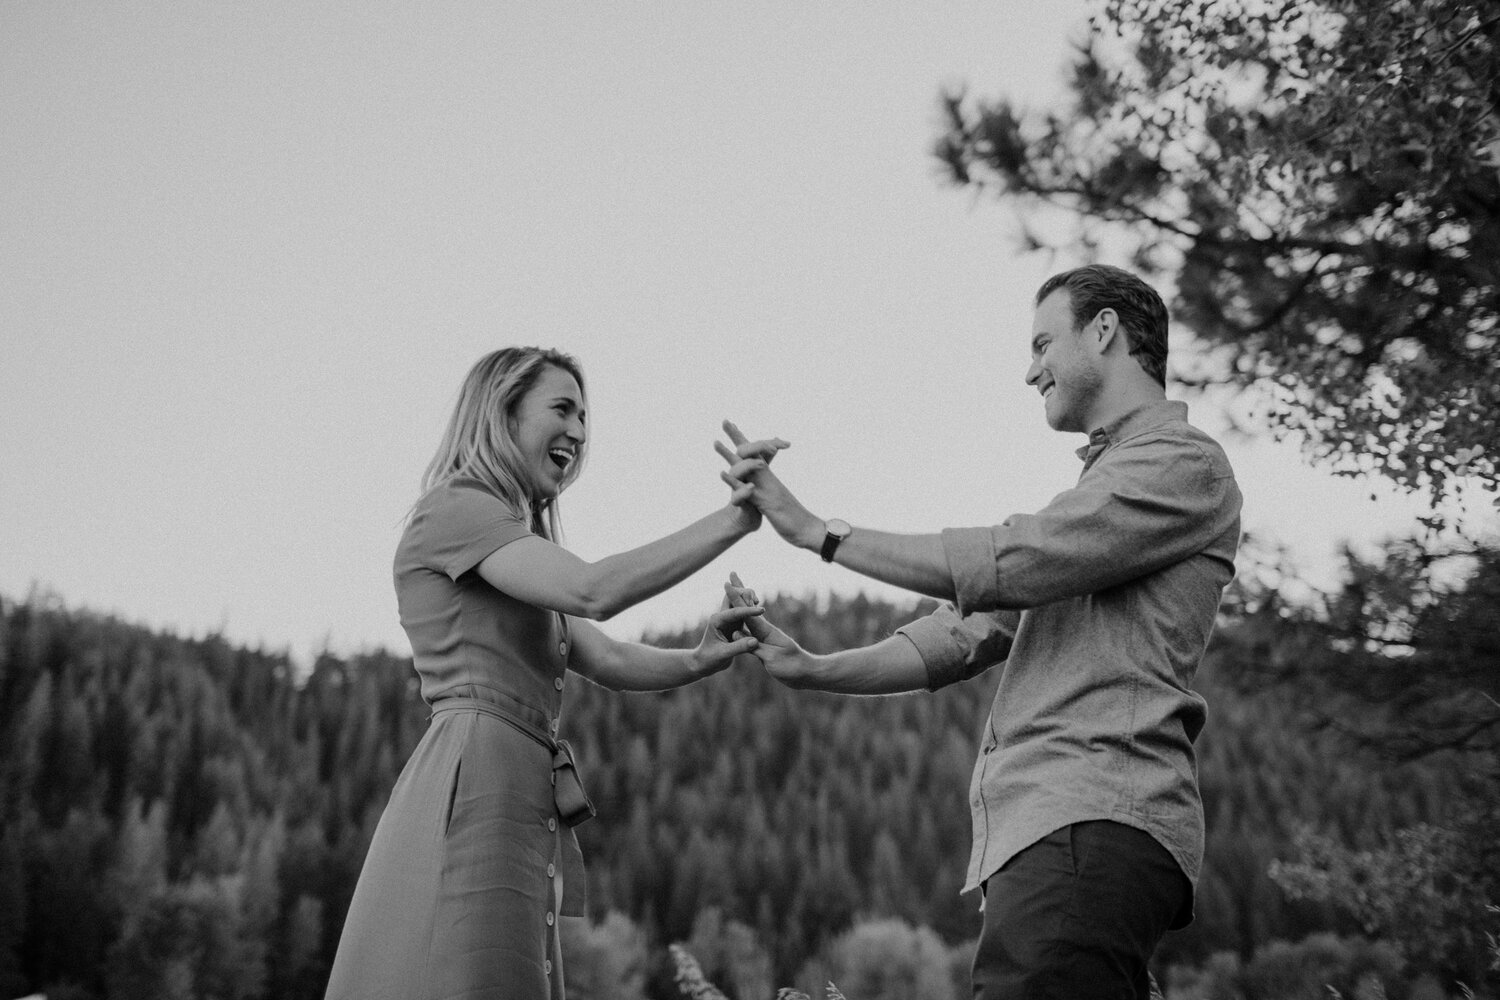 sun-valley-engagement-photos-christinemarie-33.jpg